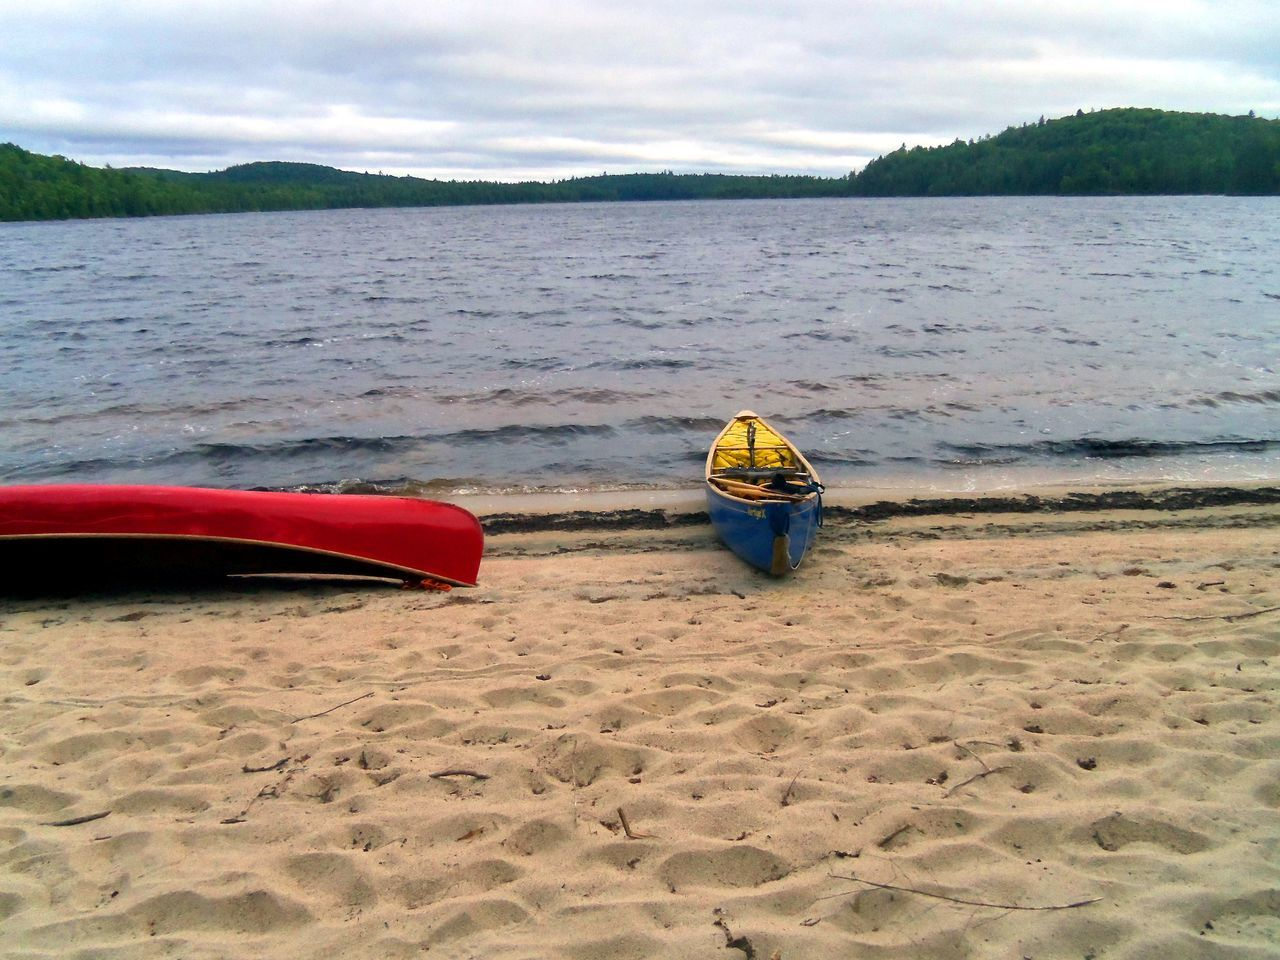 Beach Beachphotography Beauty In Nature Canoeing Trip On The New River Canoes Day Lake Landscape Nature One Person Outdoor Life Outdoors People Real People Rear View Sand Sand Dune Scenics Sea Sky Tranquility Water Wilderness Wilderness Adventure